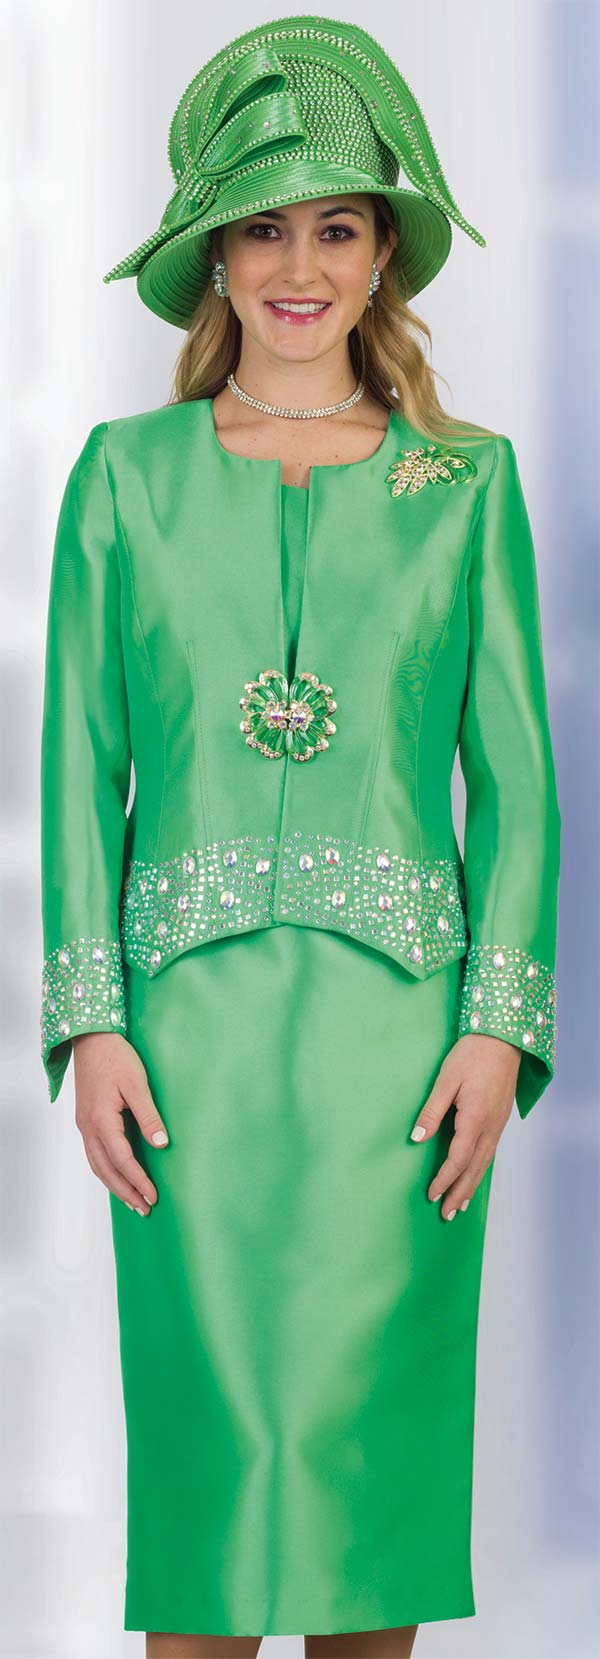 Lily and Taylor 4498 -  Silky Twill Skirt Suit With Jacket Trimmed In Rhinestones